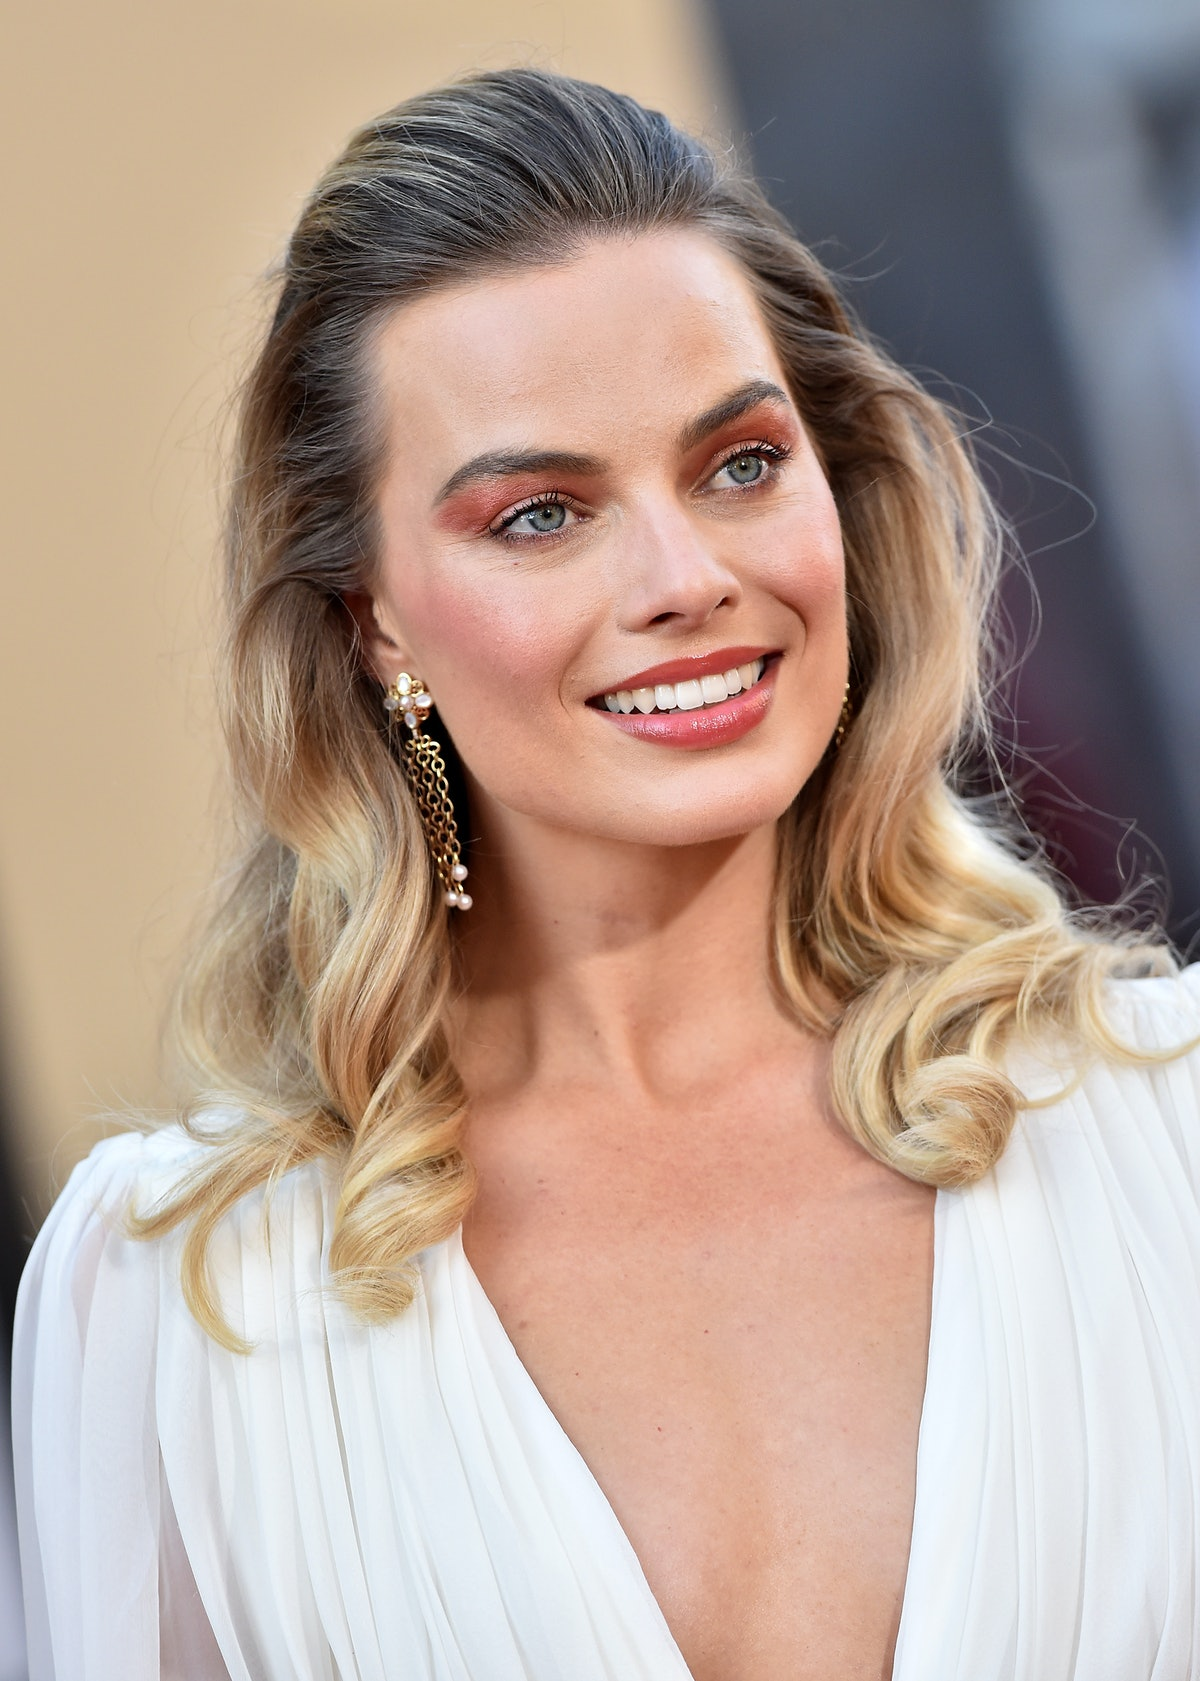 Margot Robbie is wearing a modified take on the bump — a major 2000s hairstyle.